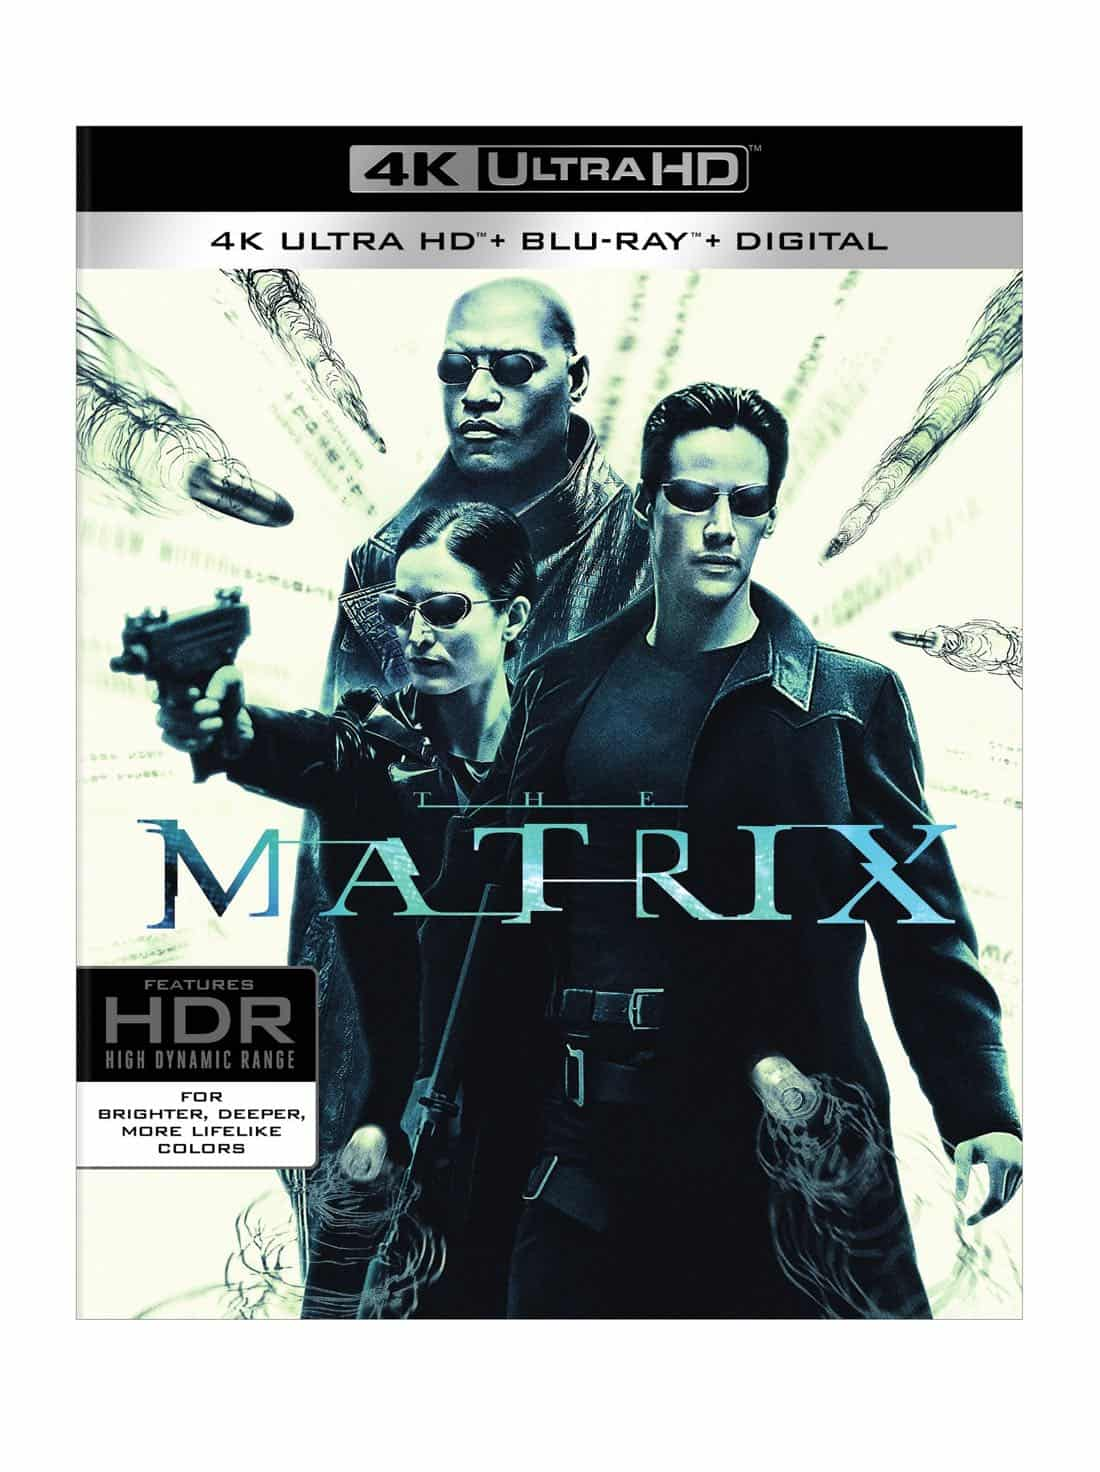 The Matrix 4K Ultra HD + Blu-ray + Digital